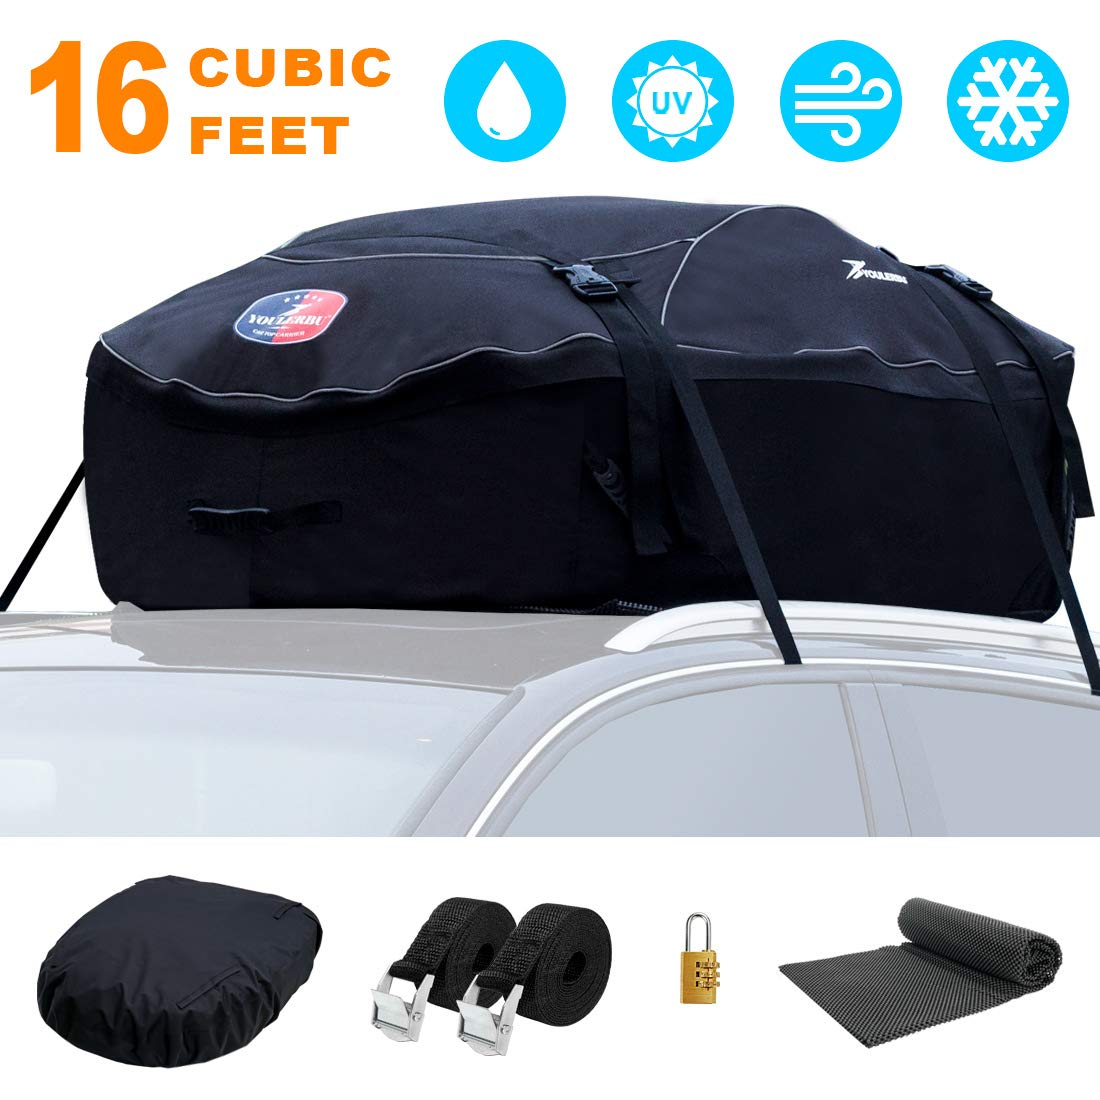 YOULERBU Rooftop Cargo Bag & Waterproof Cargo Carrier Bag with Protective Mat (16 Cubic Feet) for All Vehicle Roof Racks by YOULERBU